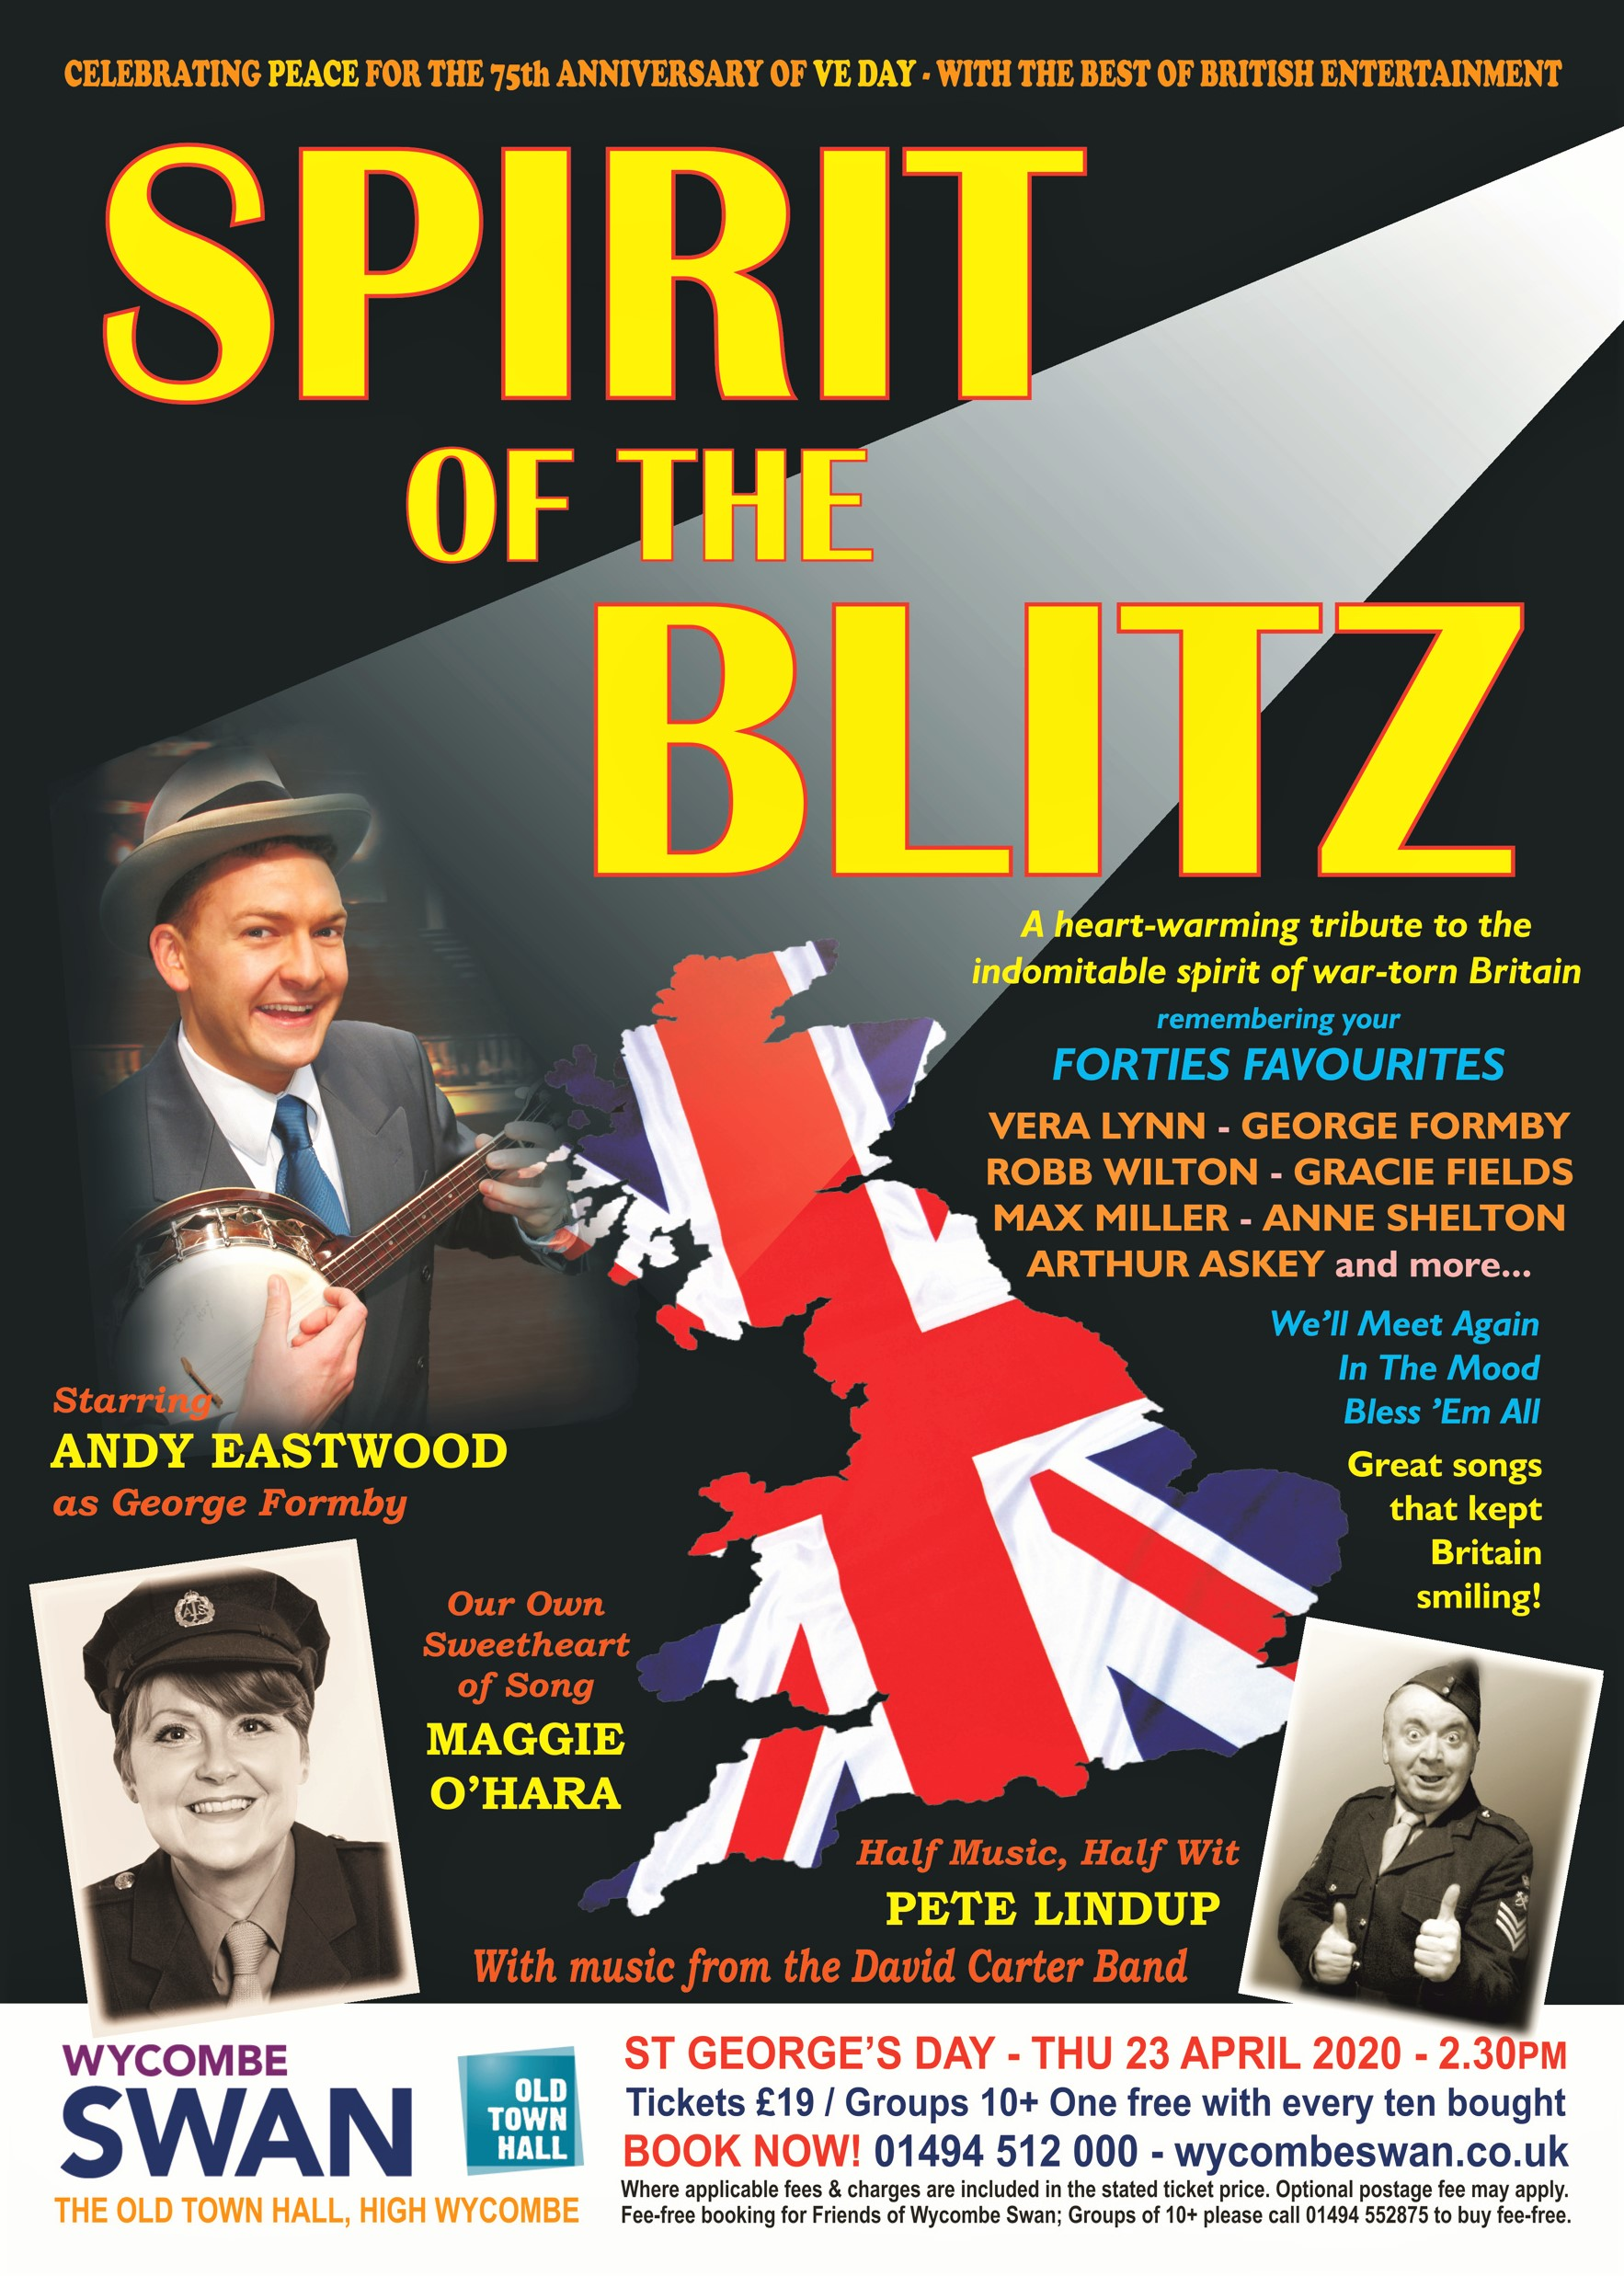 Spirit Of The Blitz - St George's Day Special